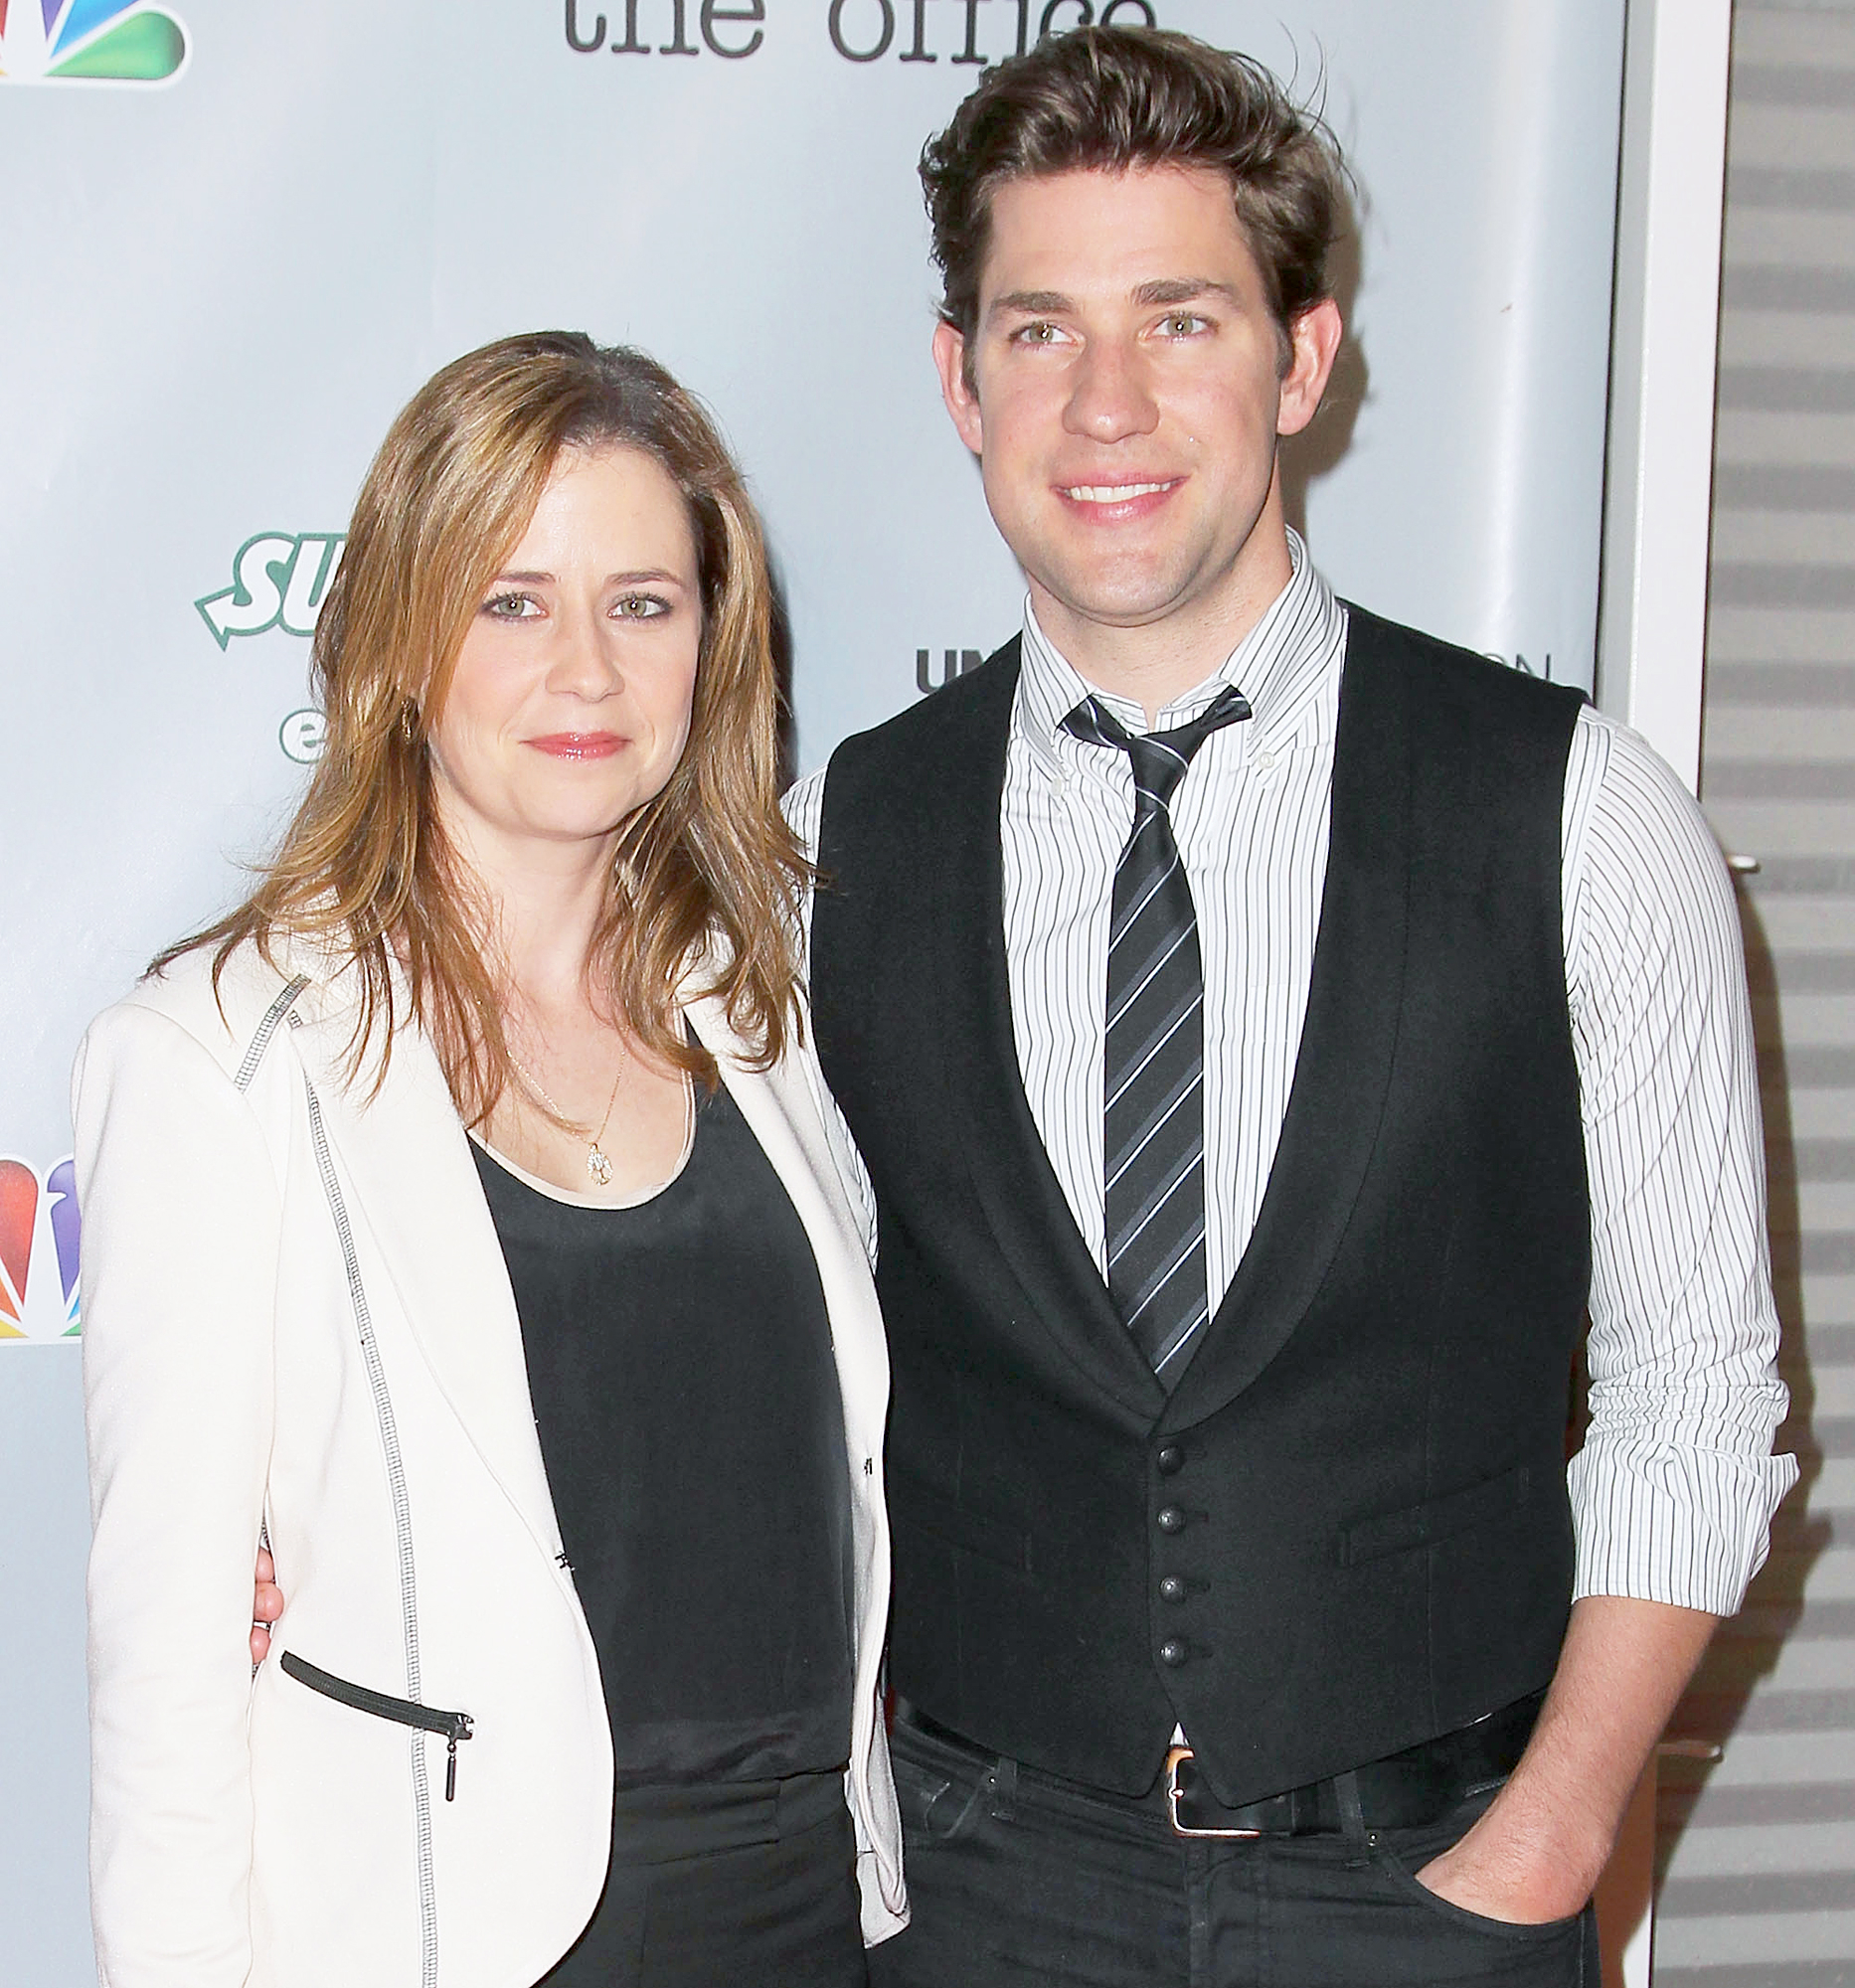 John krasinski and jenna fischer entertainment weekly